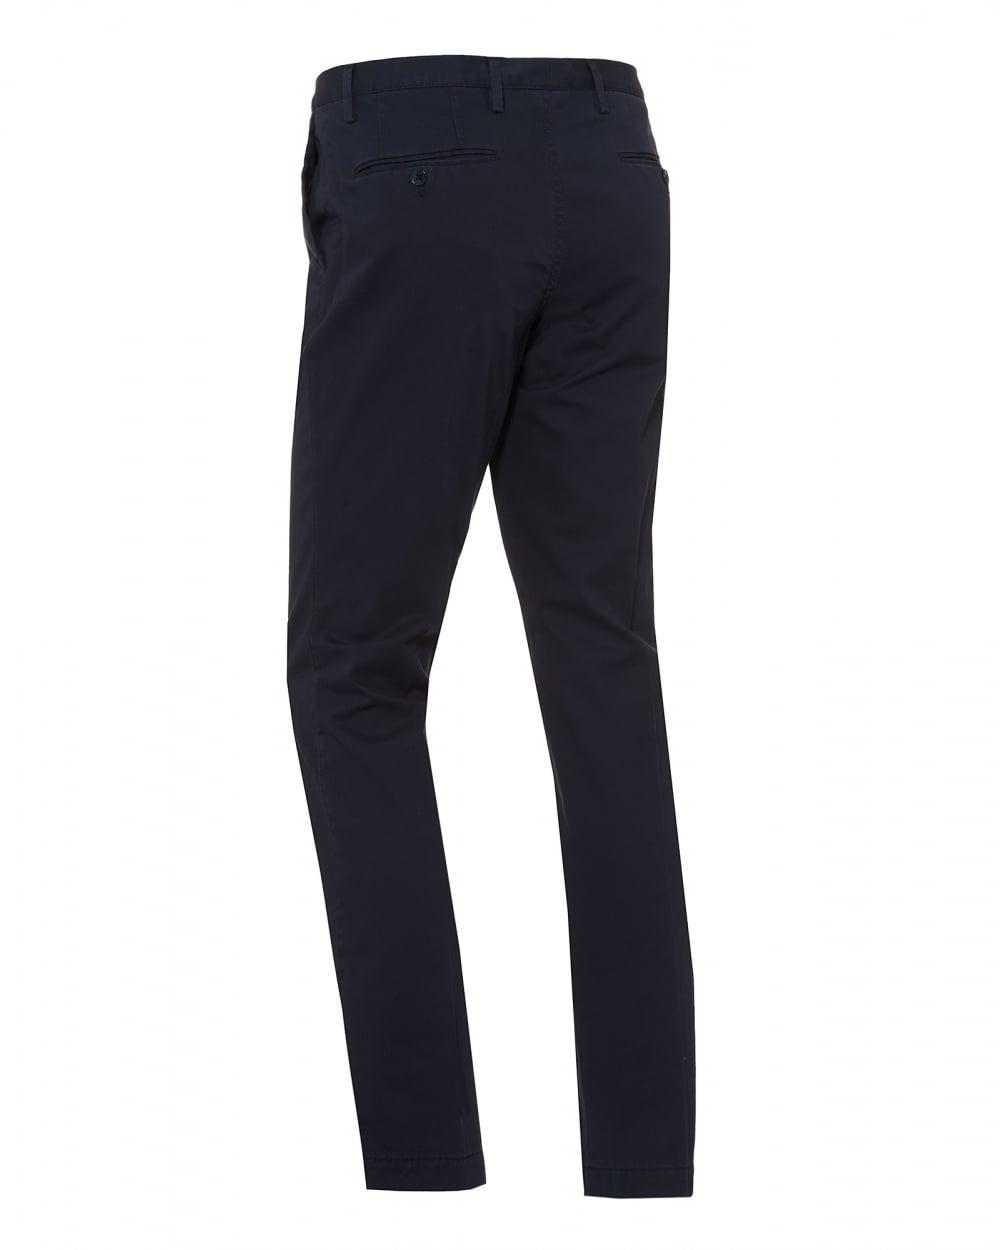 4585cfd62 BOSS Stanino Chino, Navy Blue Slim Fit Trouser in Blue for Men - Lyst